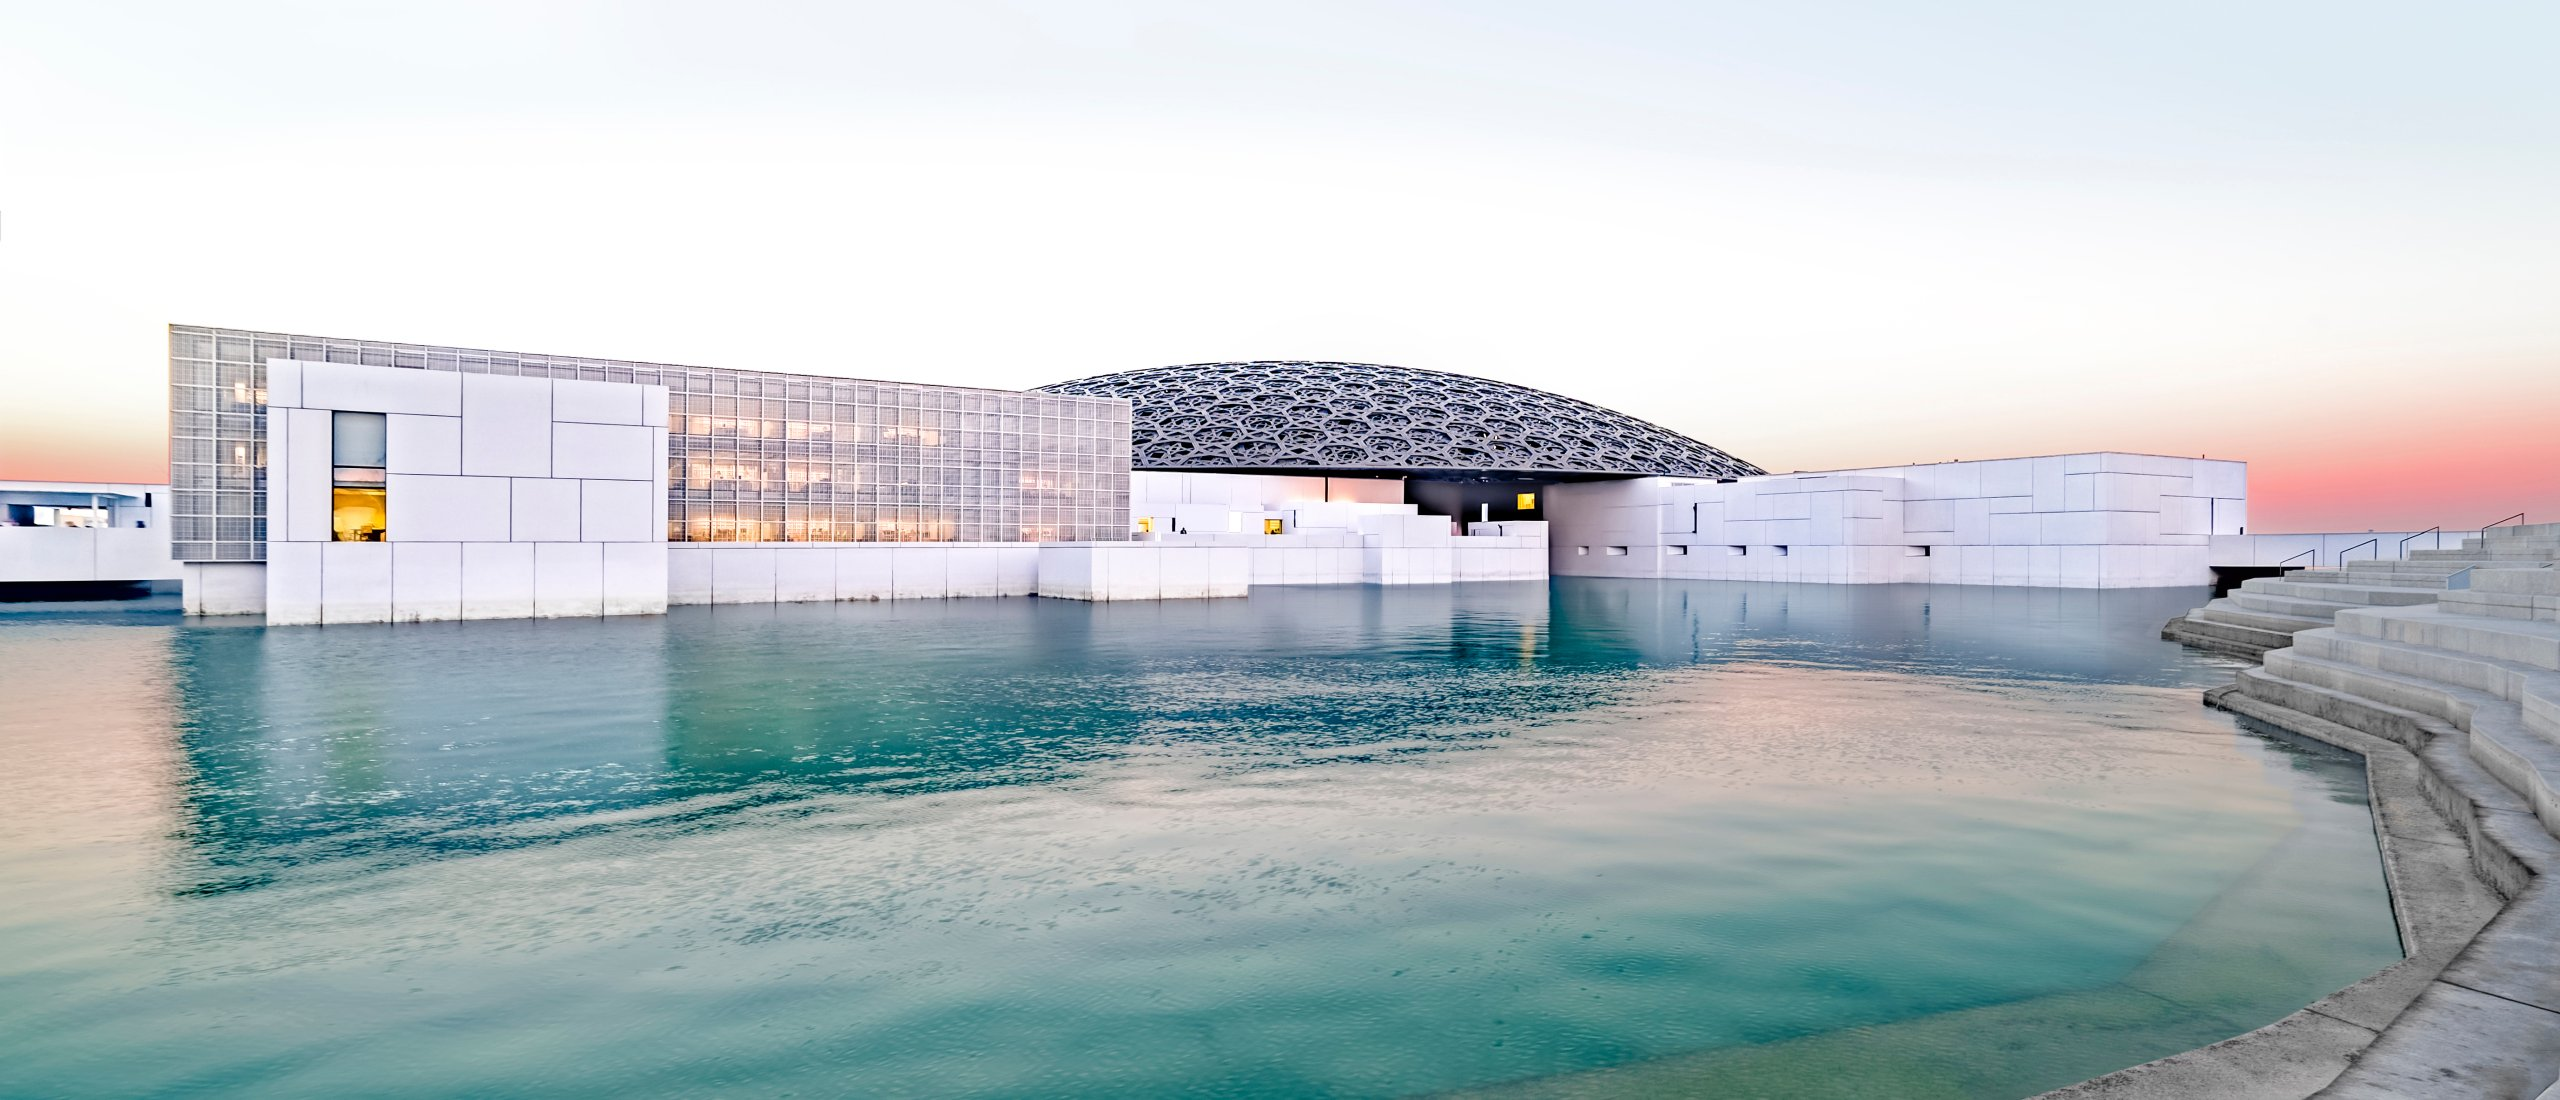 The Louvre Abu Dhabi is located in the Saadiyat Island Cultural District. (SHUTTERSTOCK PHOTO)